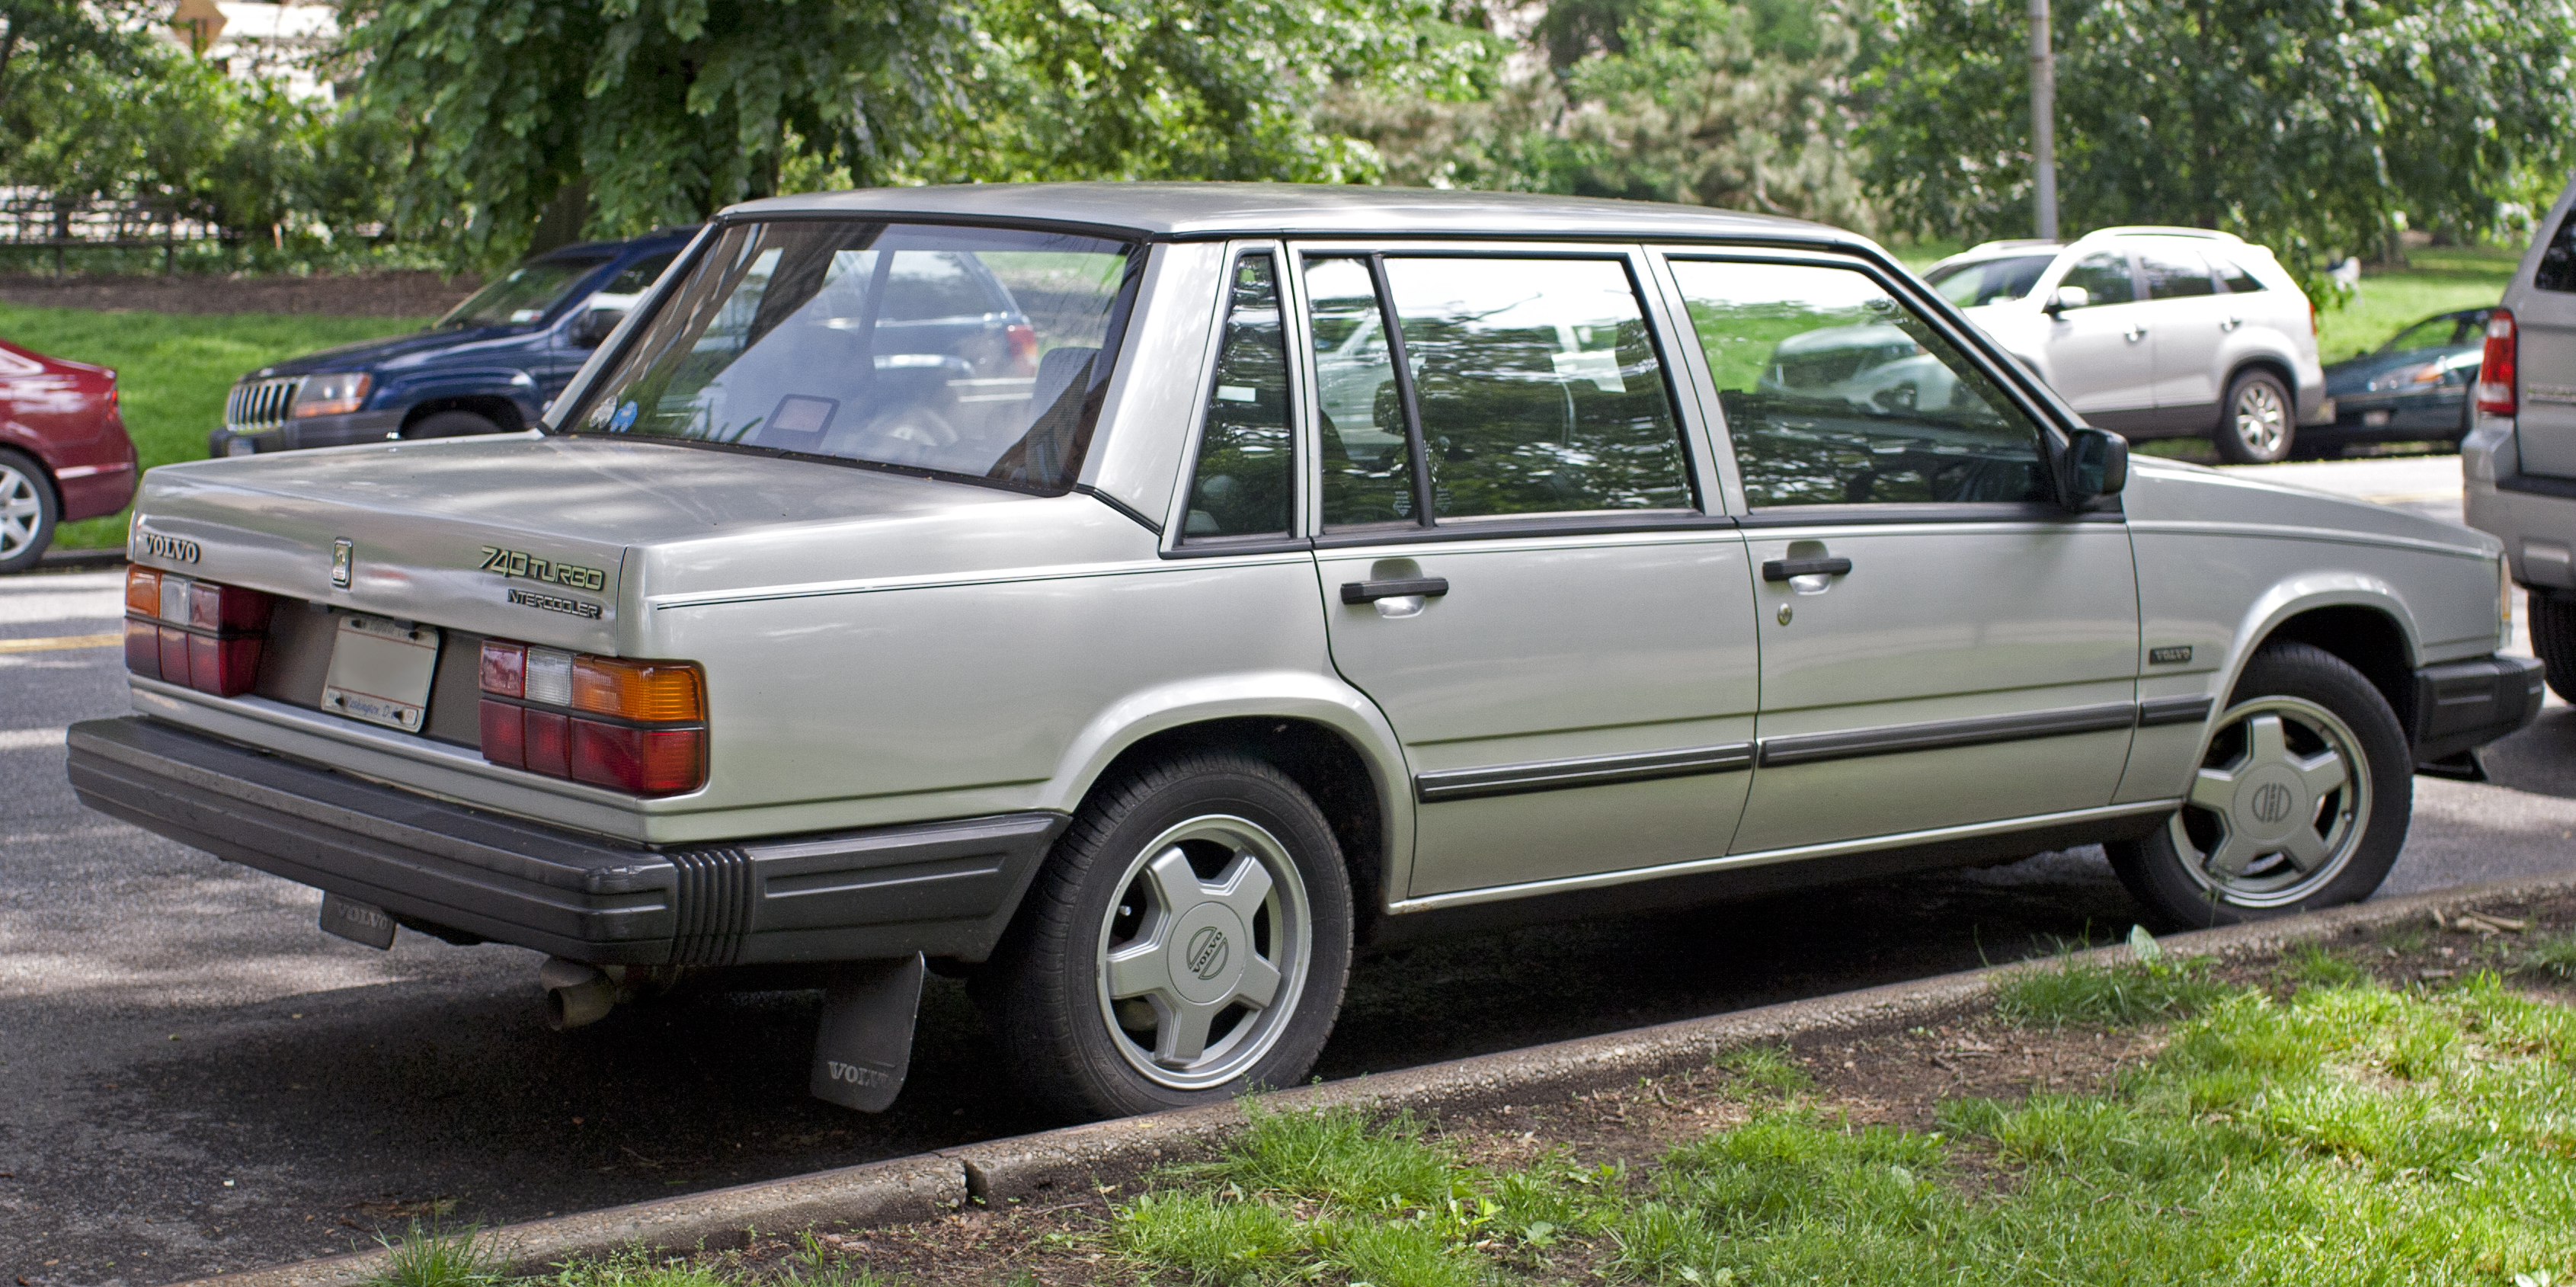 File:1987 Volvo 740 Turbo US.jpg - Wikimedia Commons